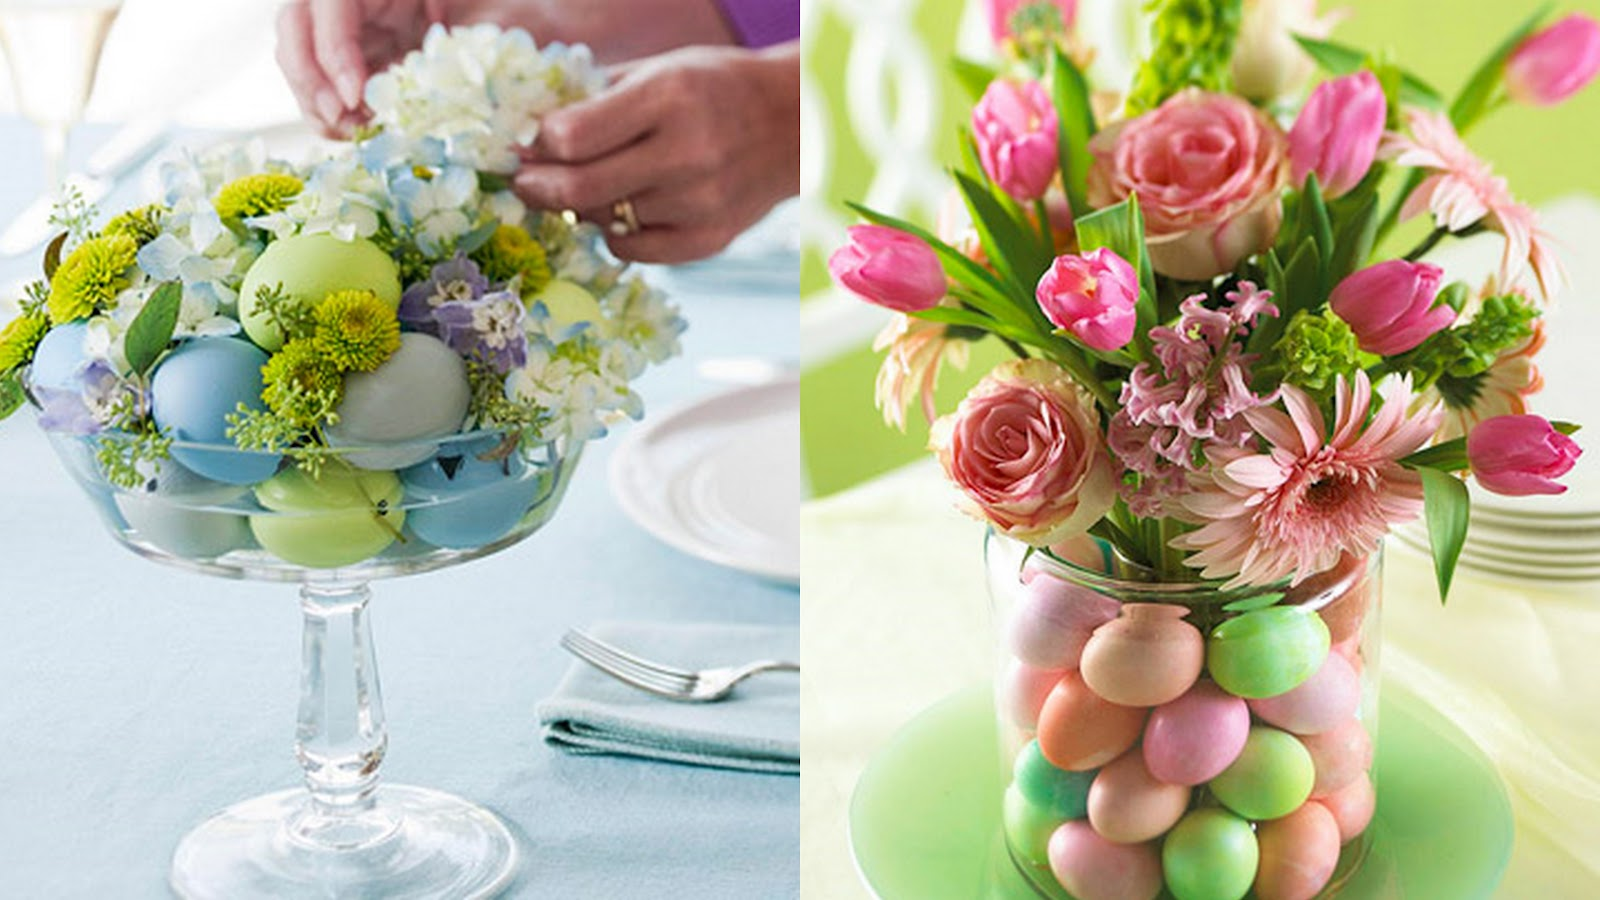 Spanglish chic easter ideas ideas para celebrar pascua for Decoracion de pascua